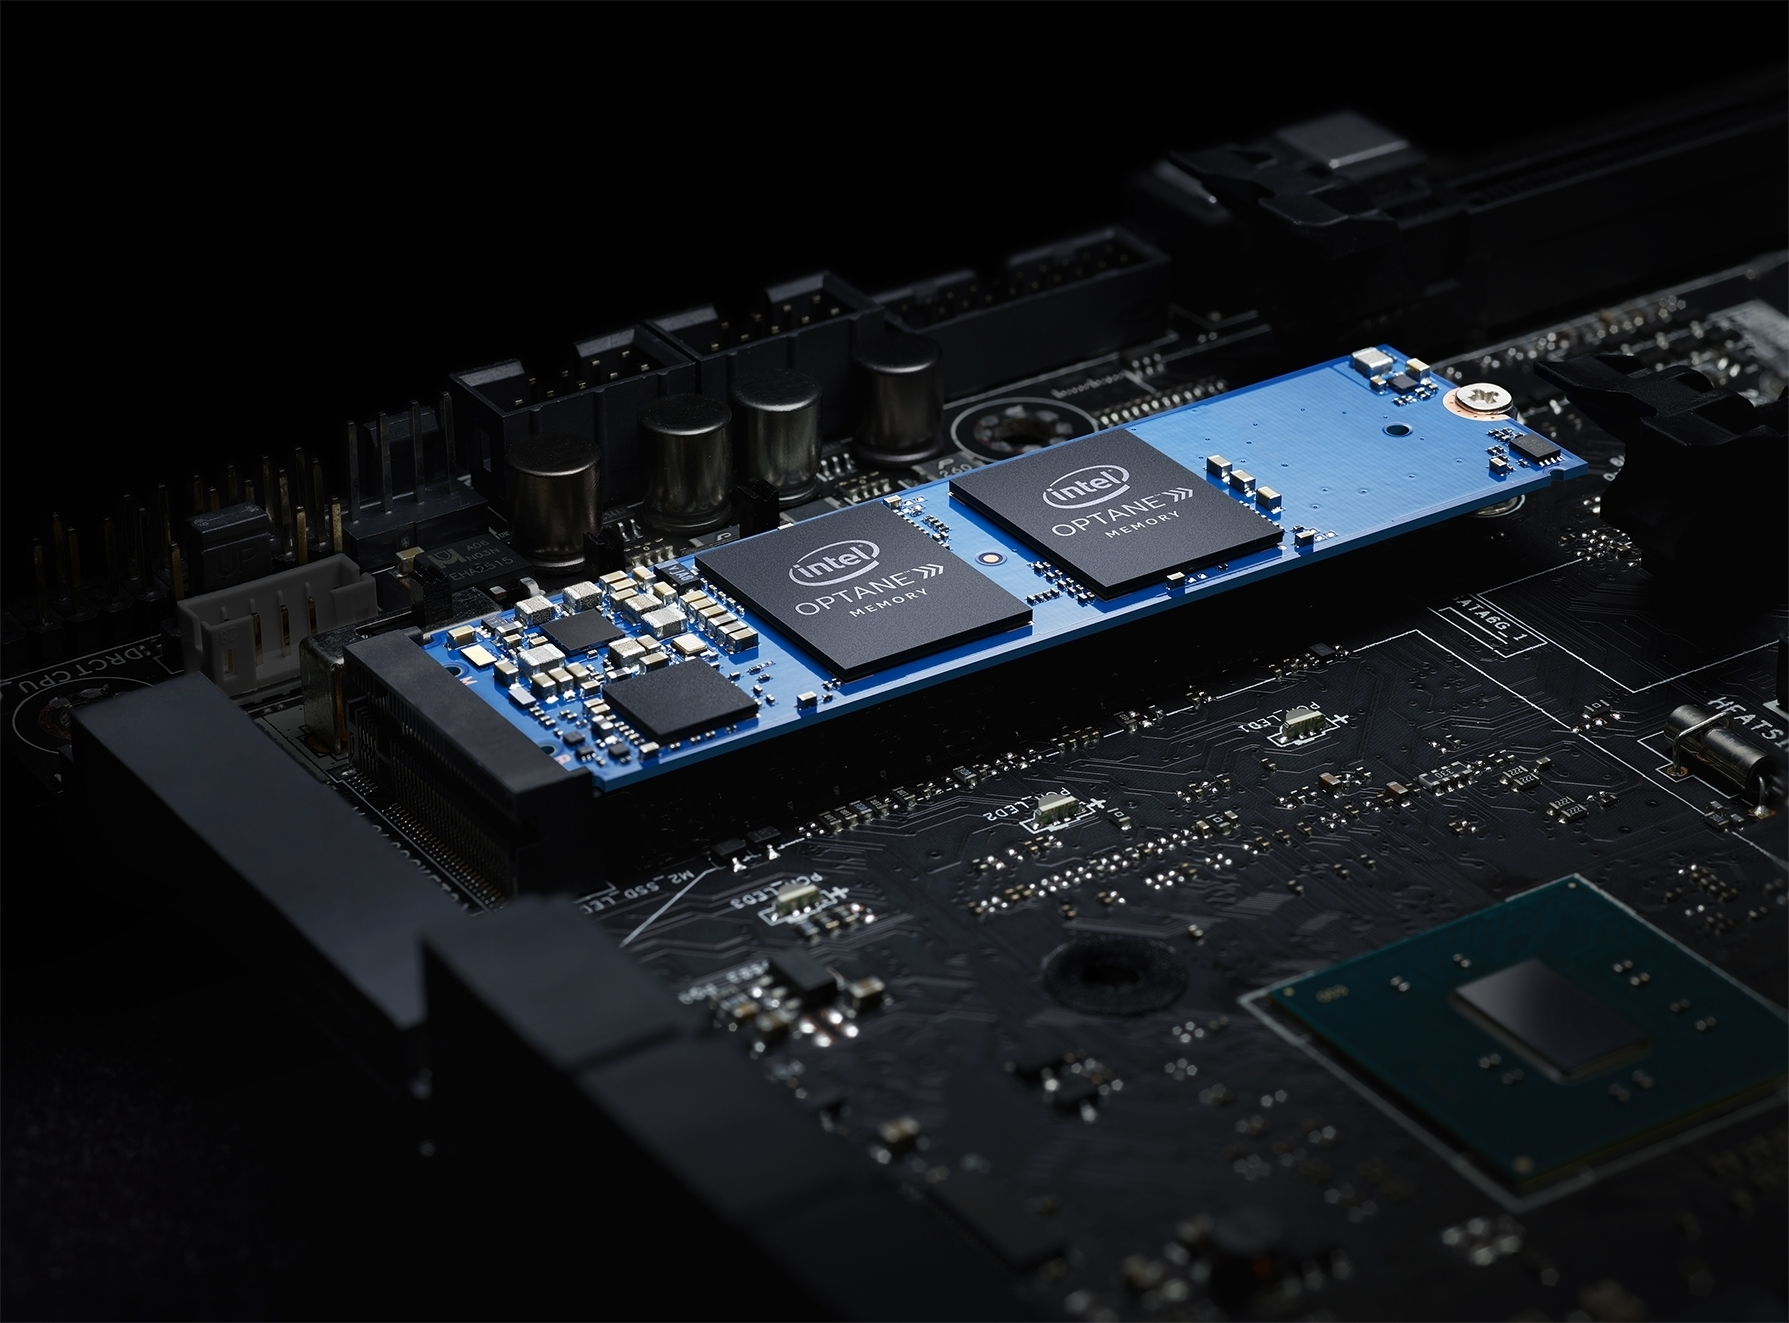 Intel Is Directly Using Optane Memory On Solid-State Drives For Better Performance – But Only Prebuilt Systems Can Use Them Though